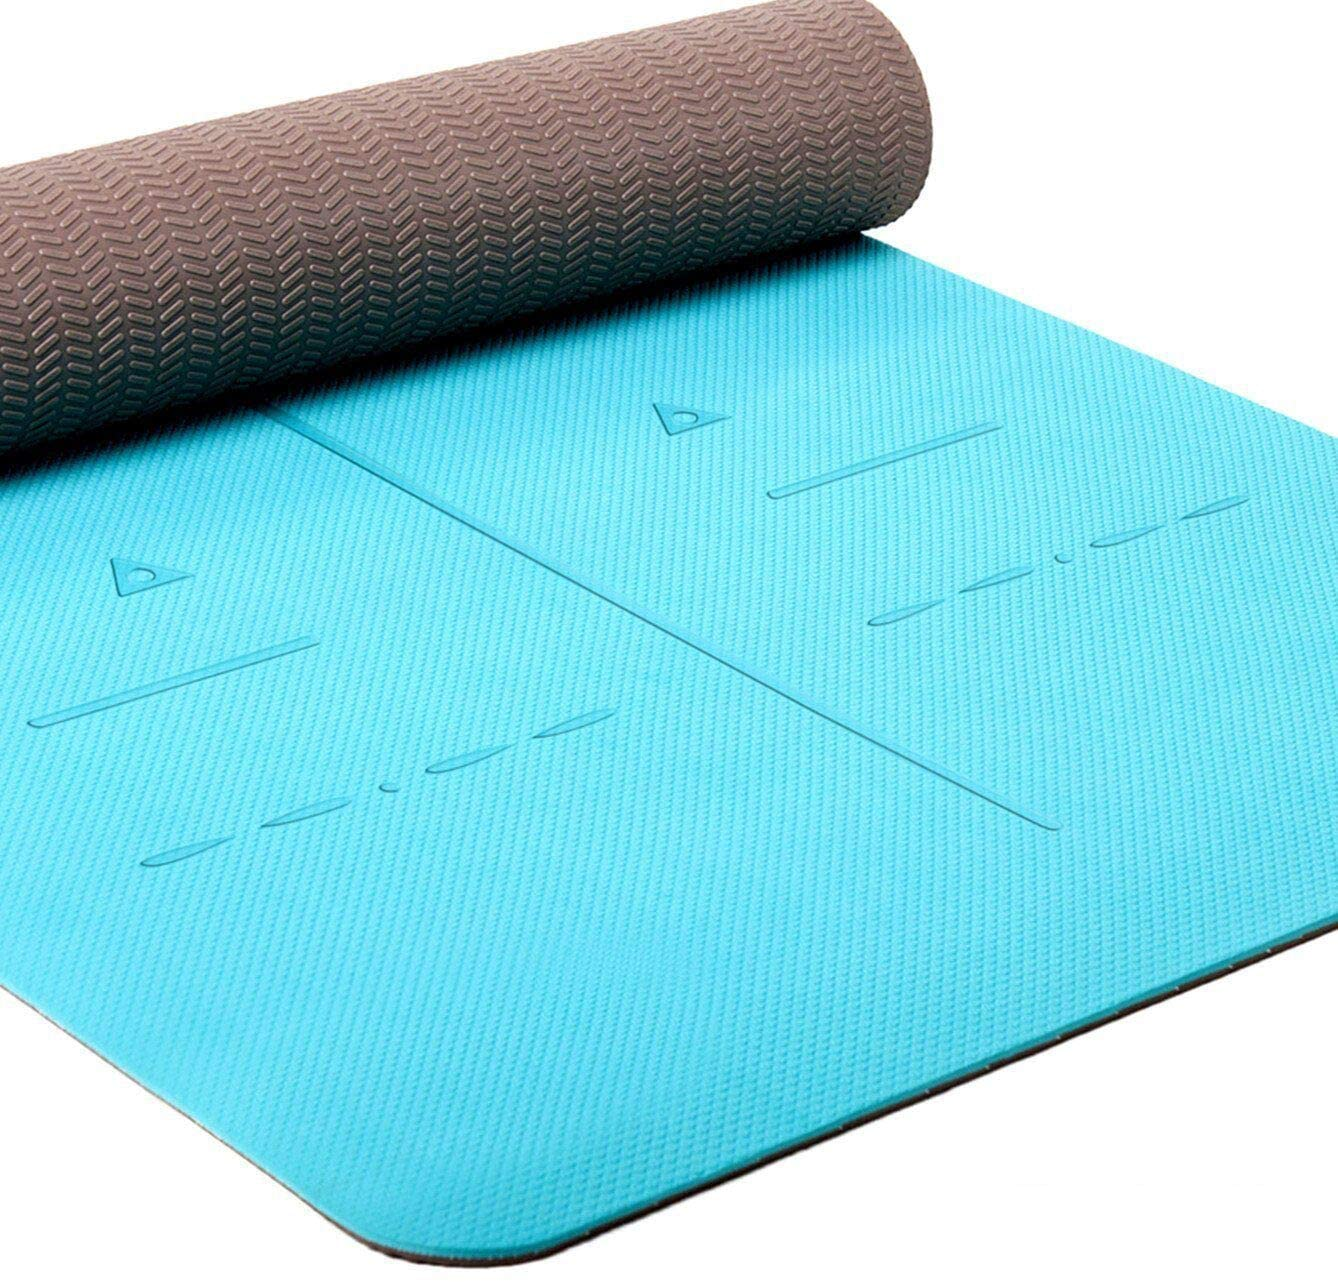 healthyyoga non slip yoga mat, best christmas gifts for mom